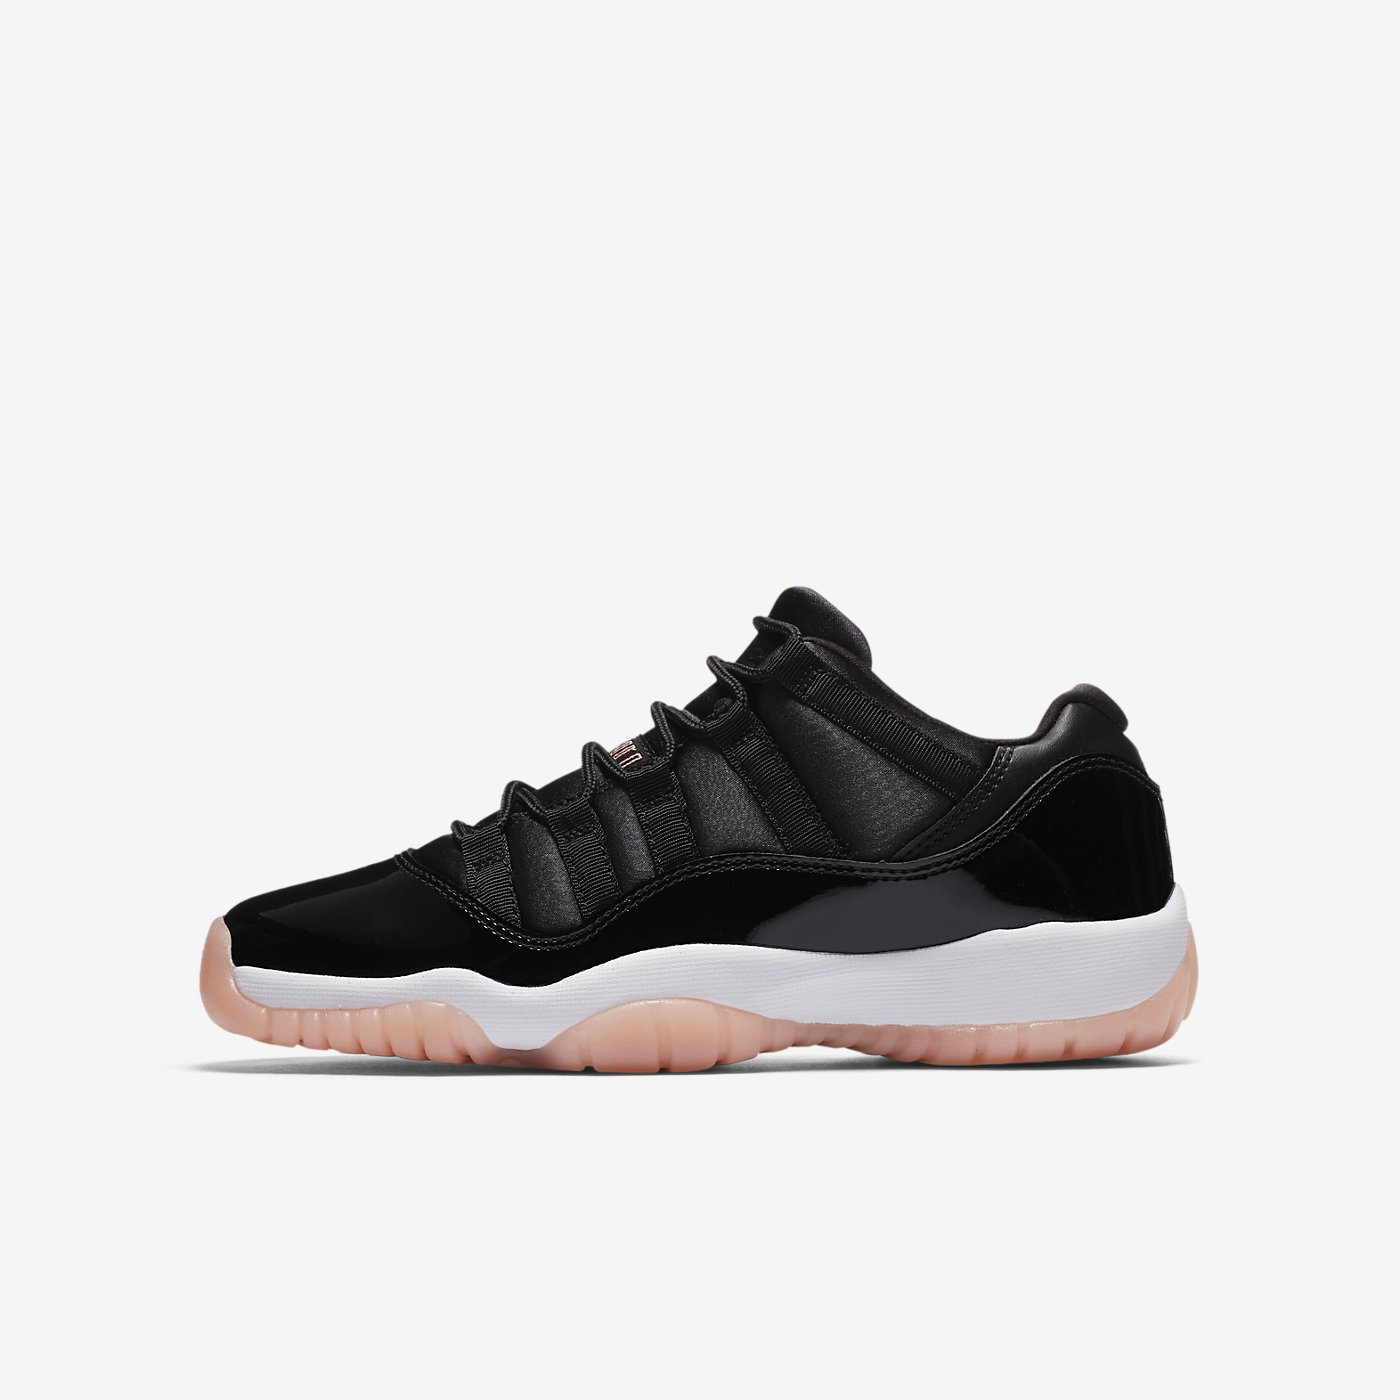 Air Jordan 11 Low « Bleached Coral »